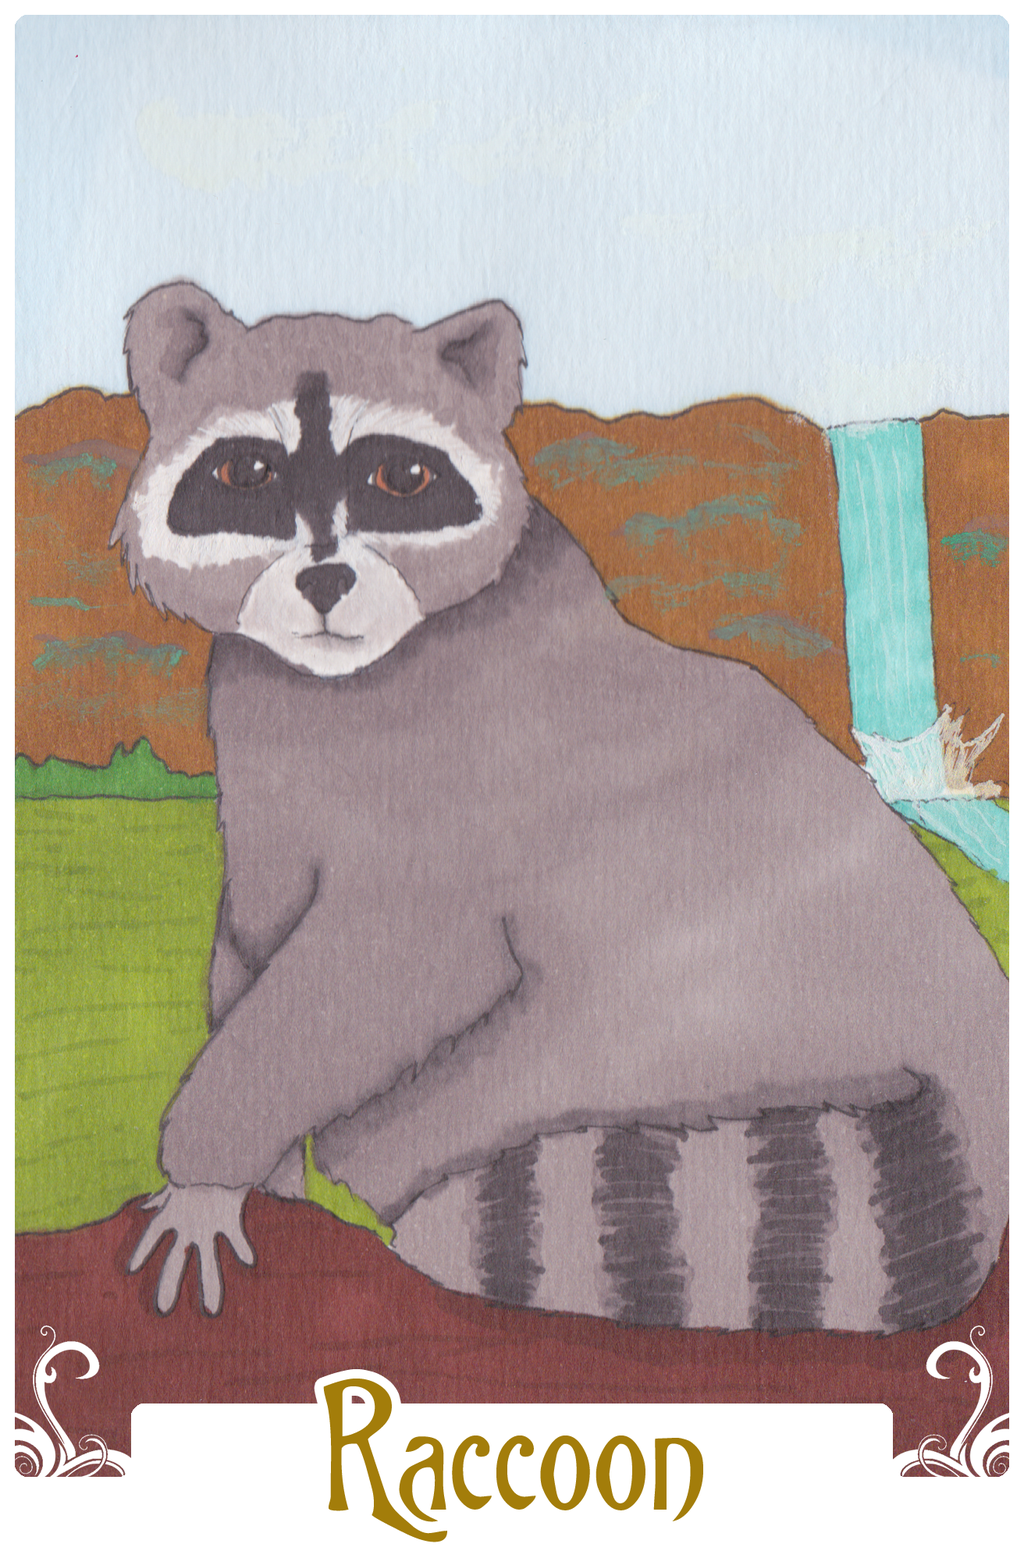 Raccoon (2014)